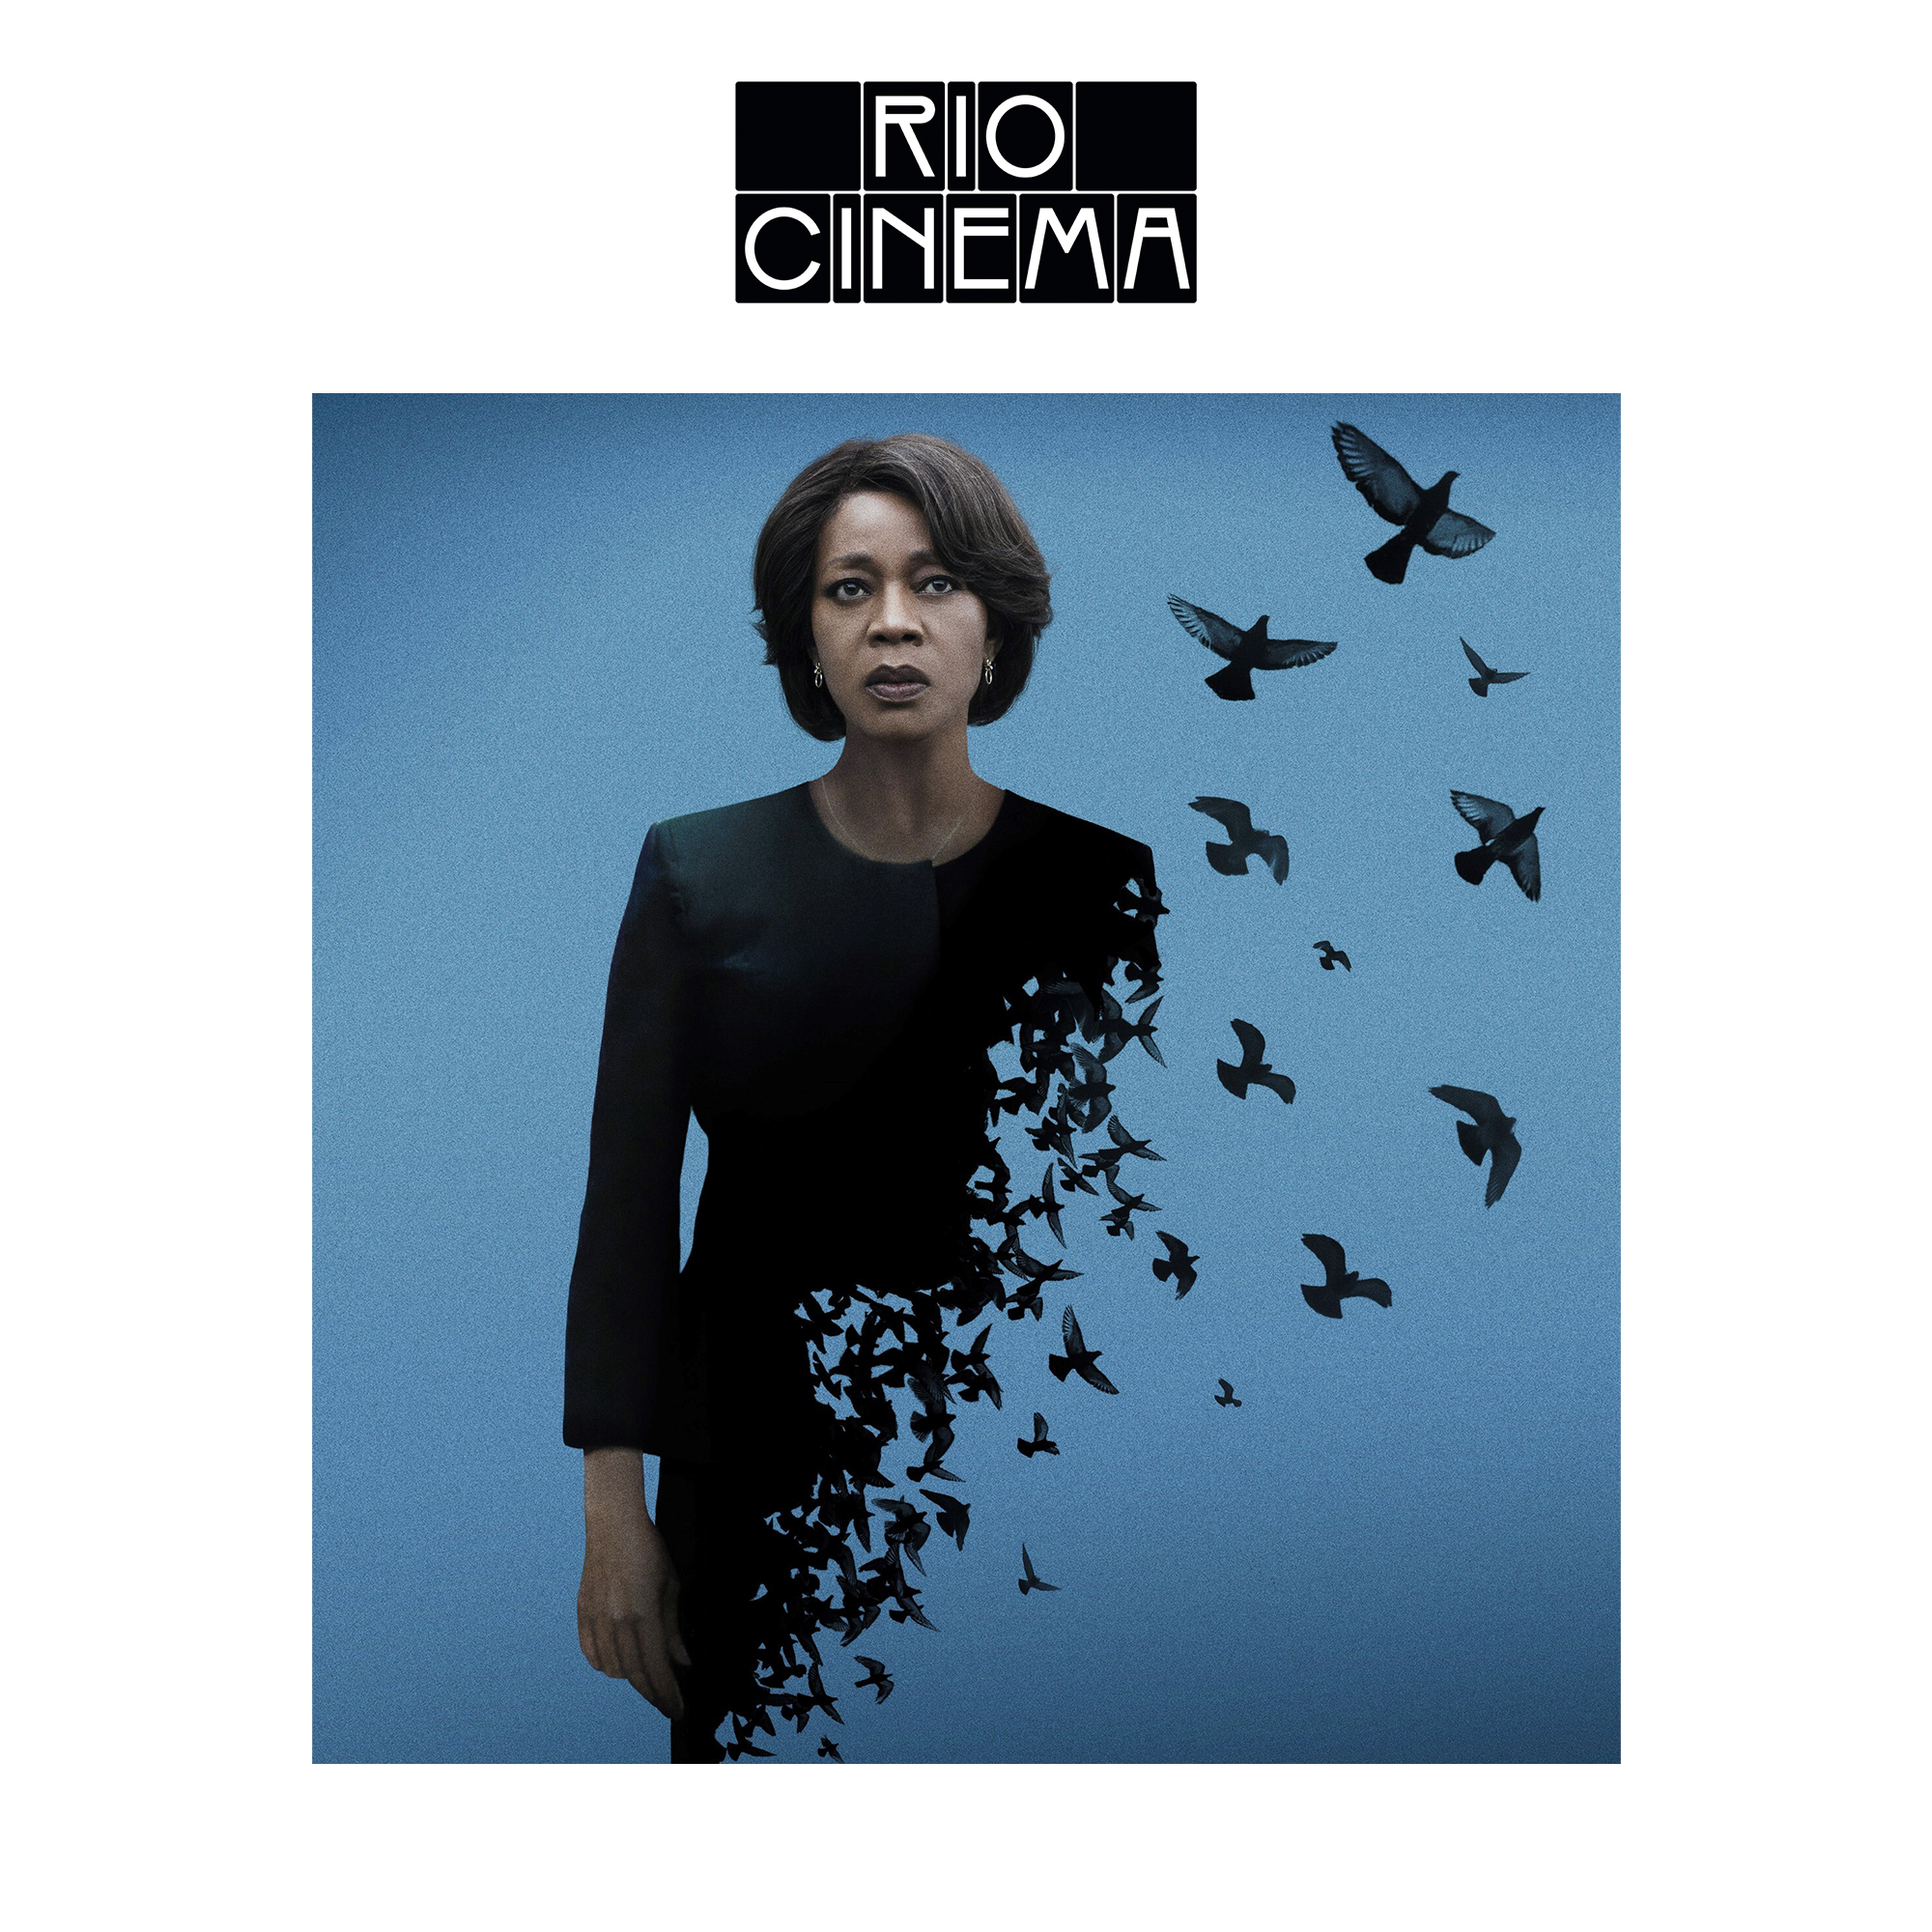 Clemency at Rio Cinema